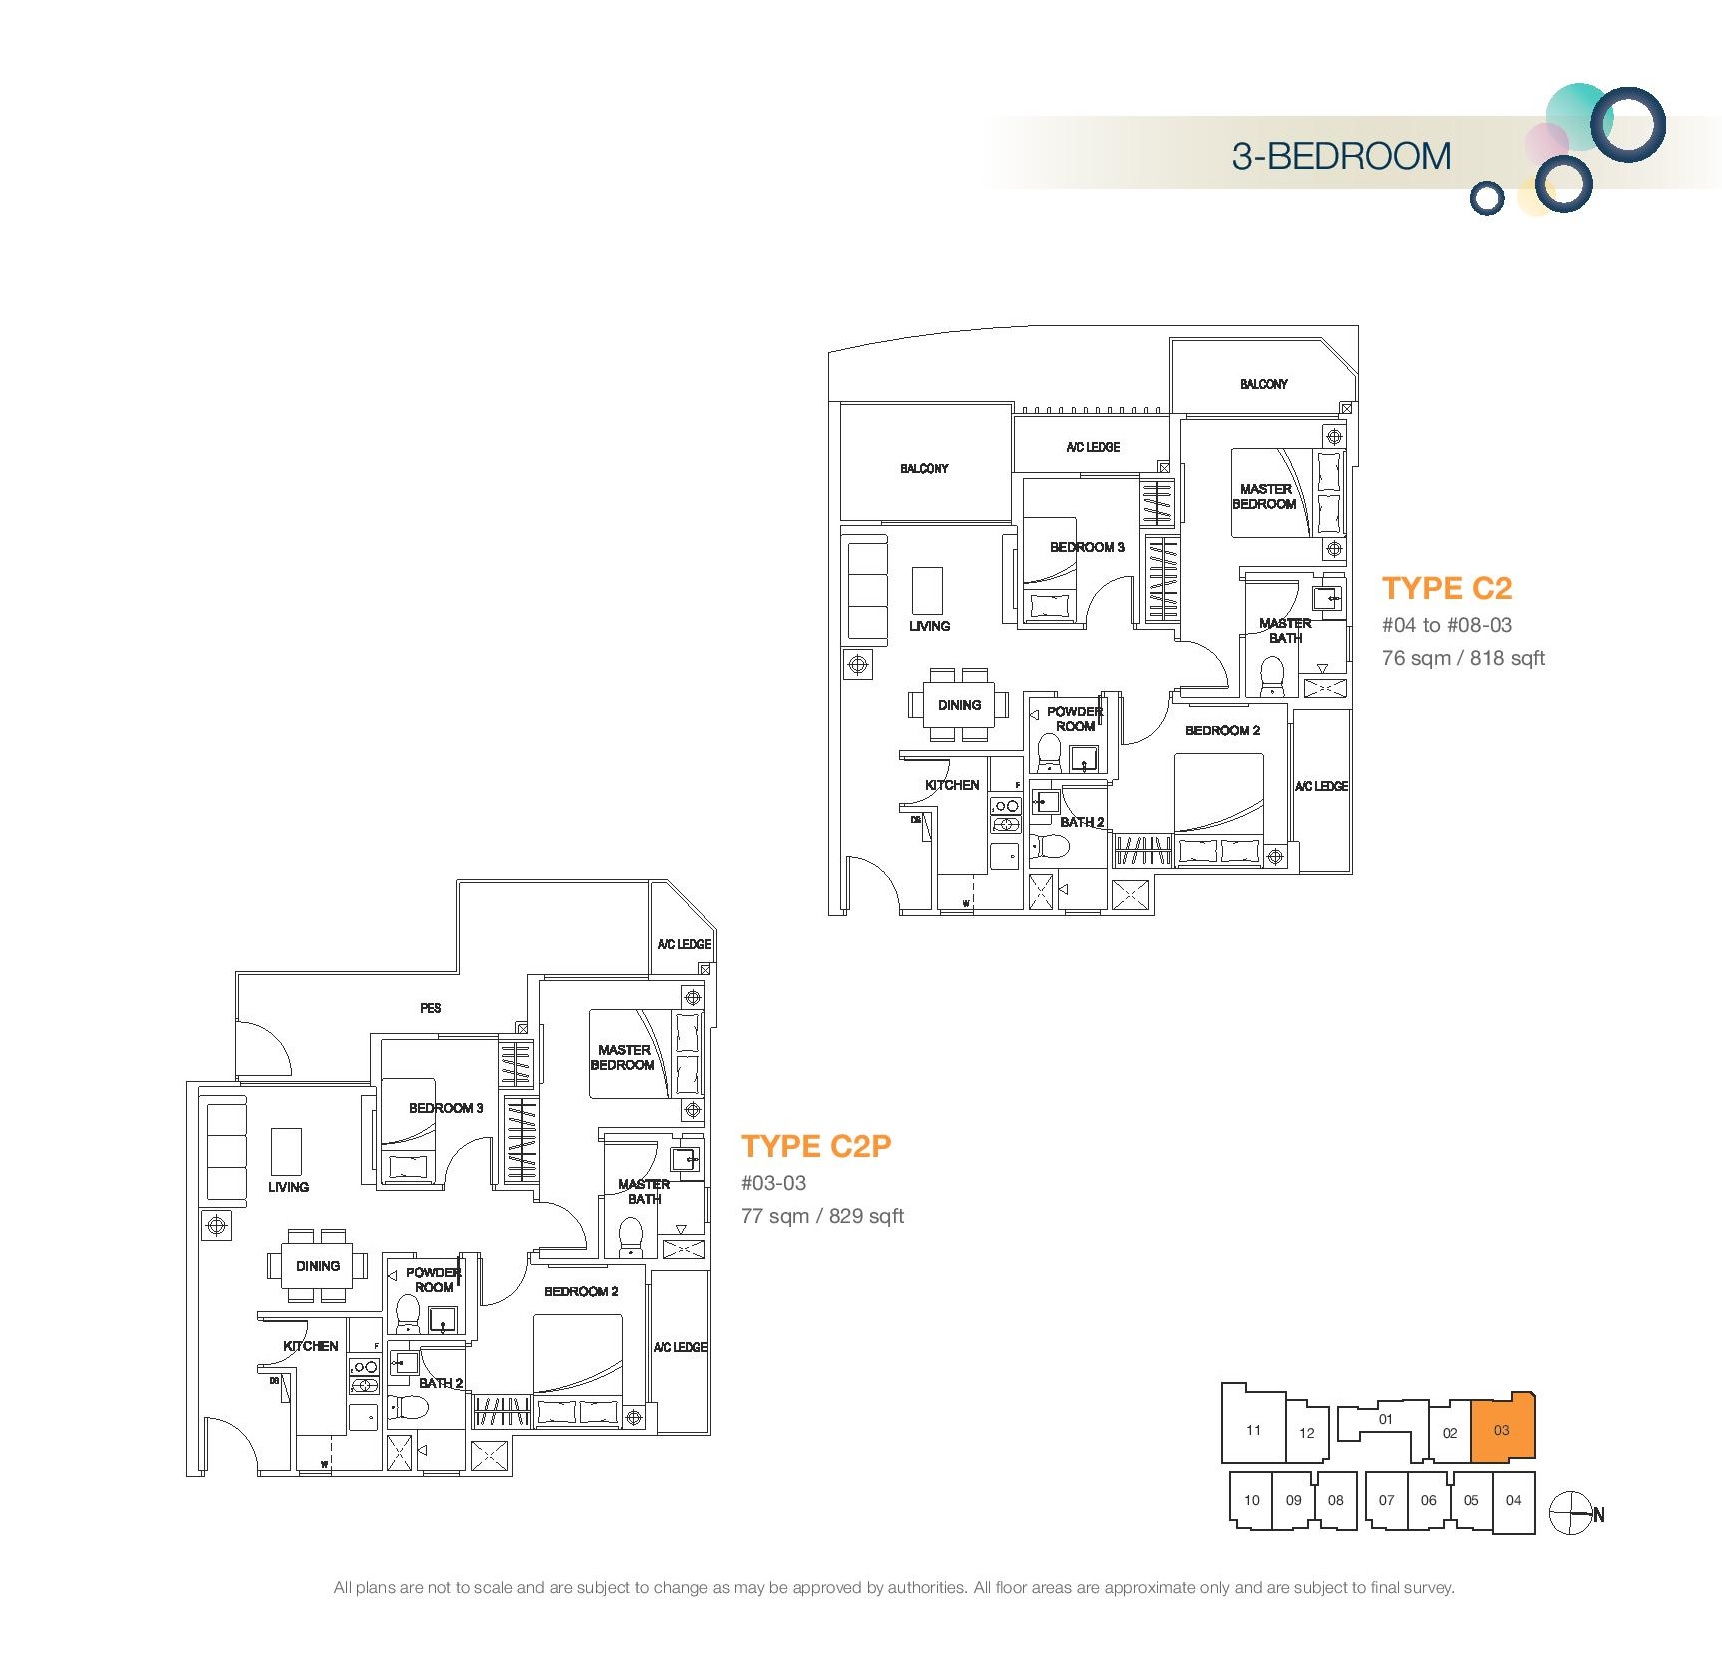 Rezi 3Two 3 Bedroom Floor Plans Type C2, C2P